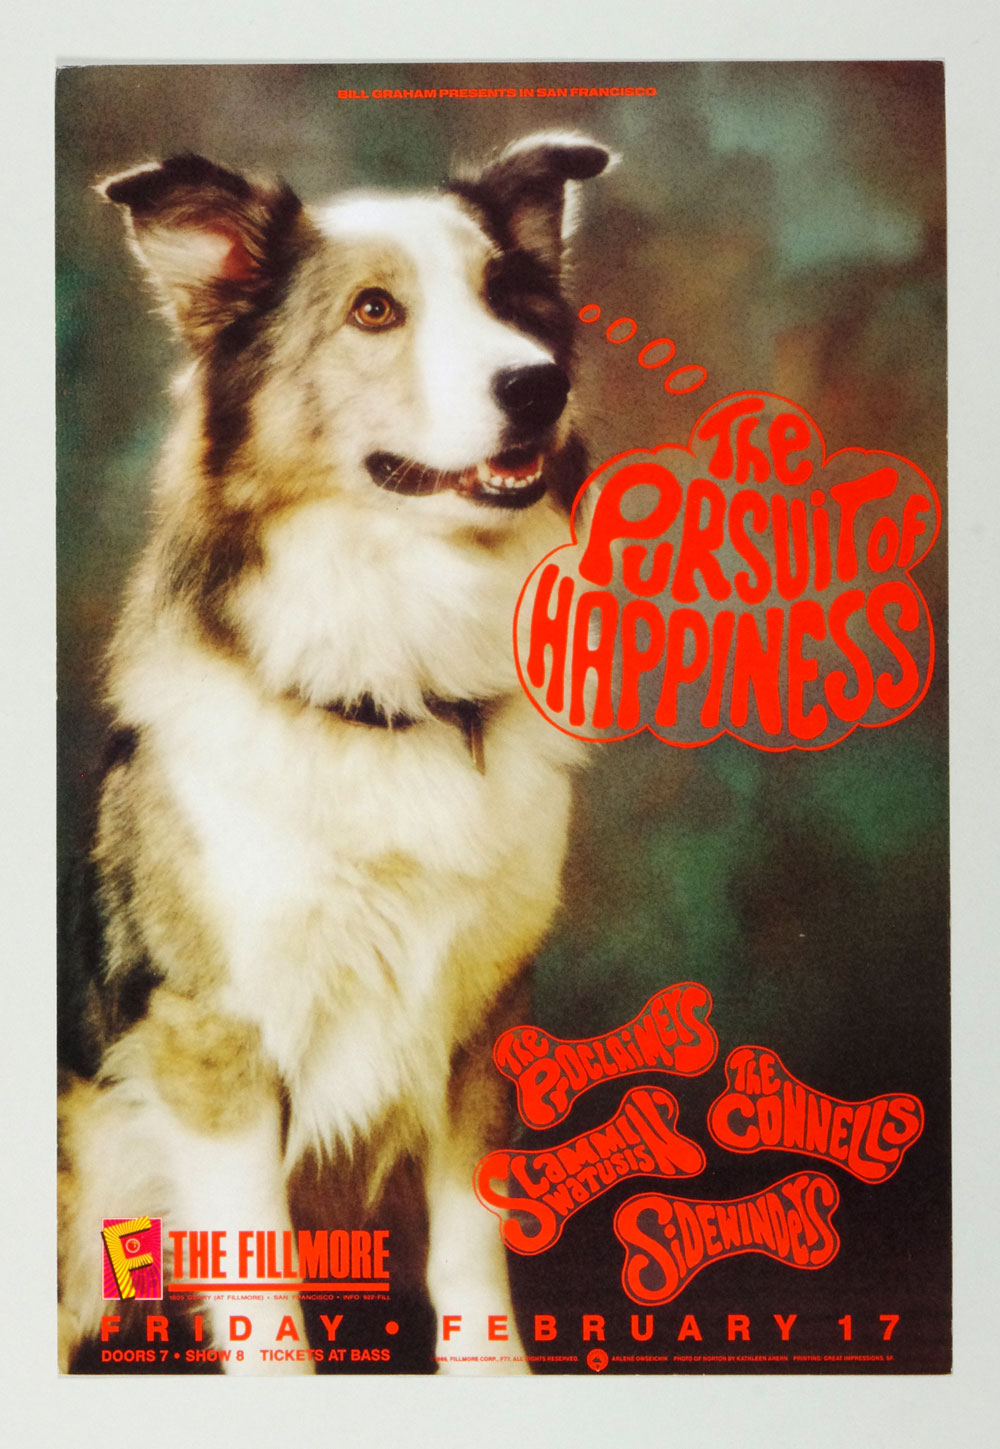 New Fillmore F077 Poster The Pursuit of Happiness Proclaimeys 1989 Feb 17